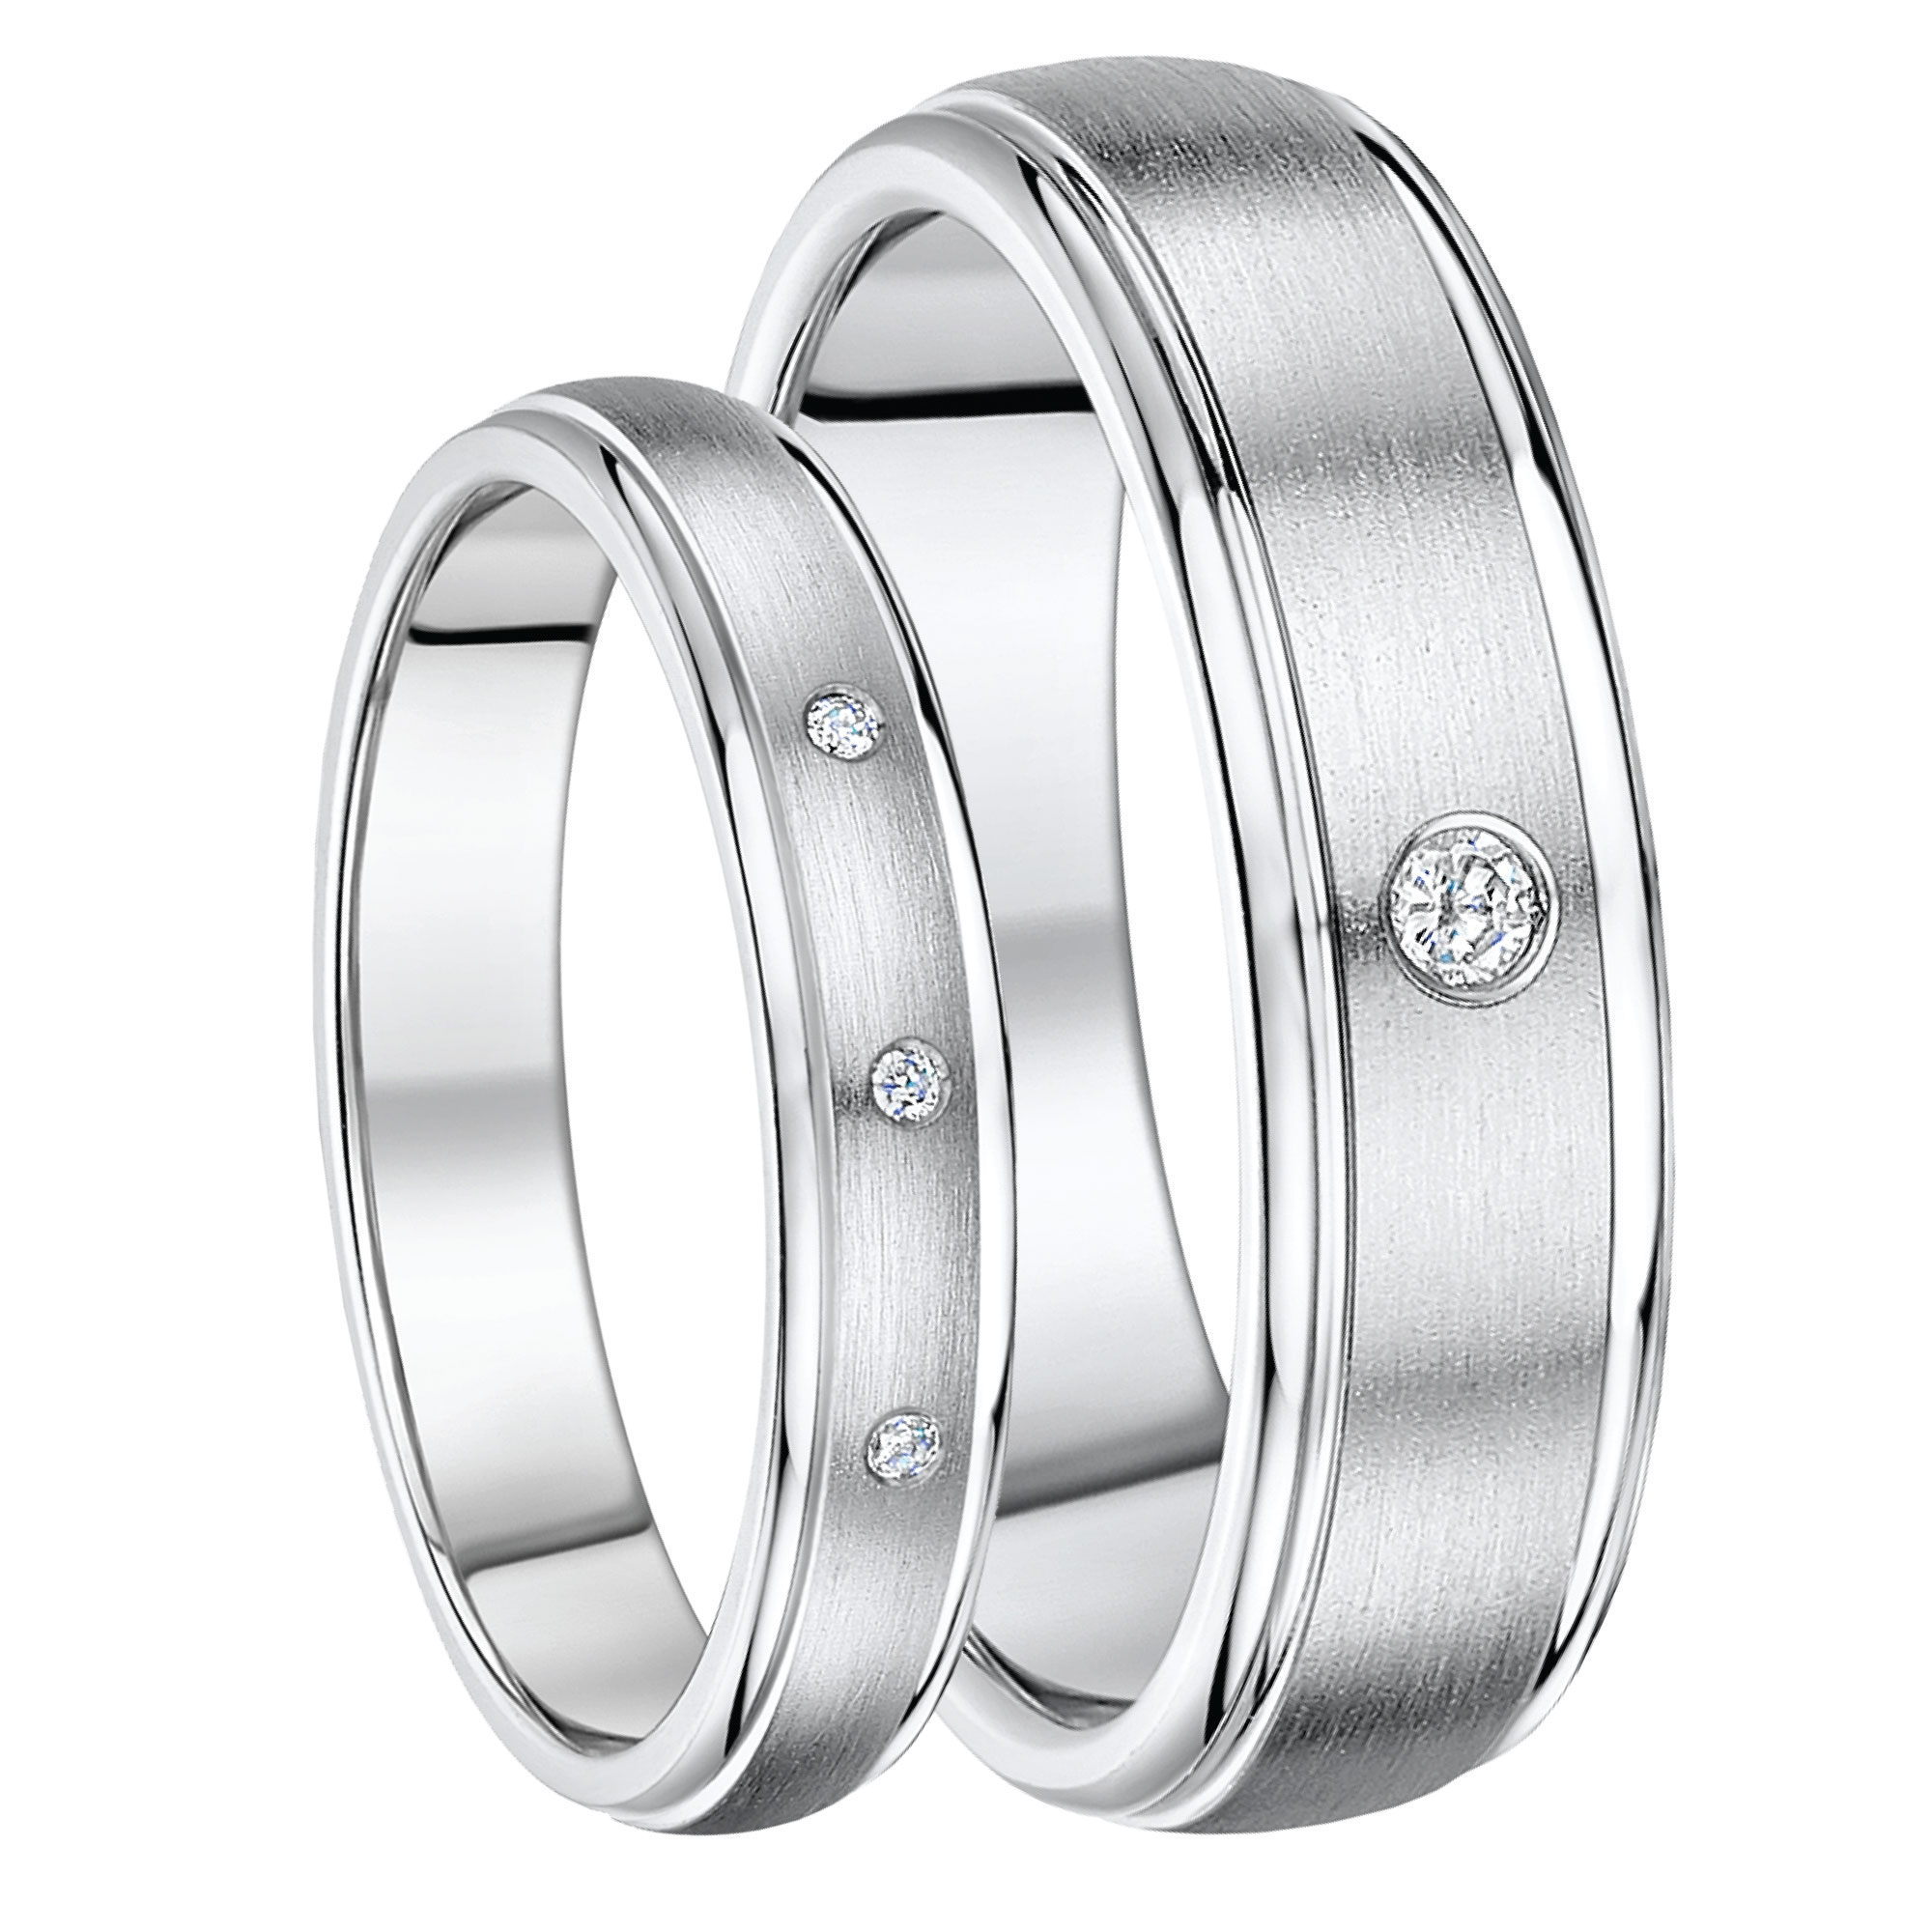 jewellery sydney william big australia ring rings christopher wedding titanium mens